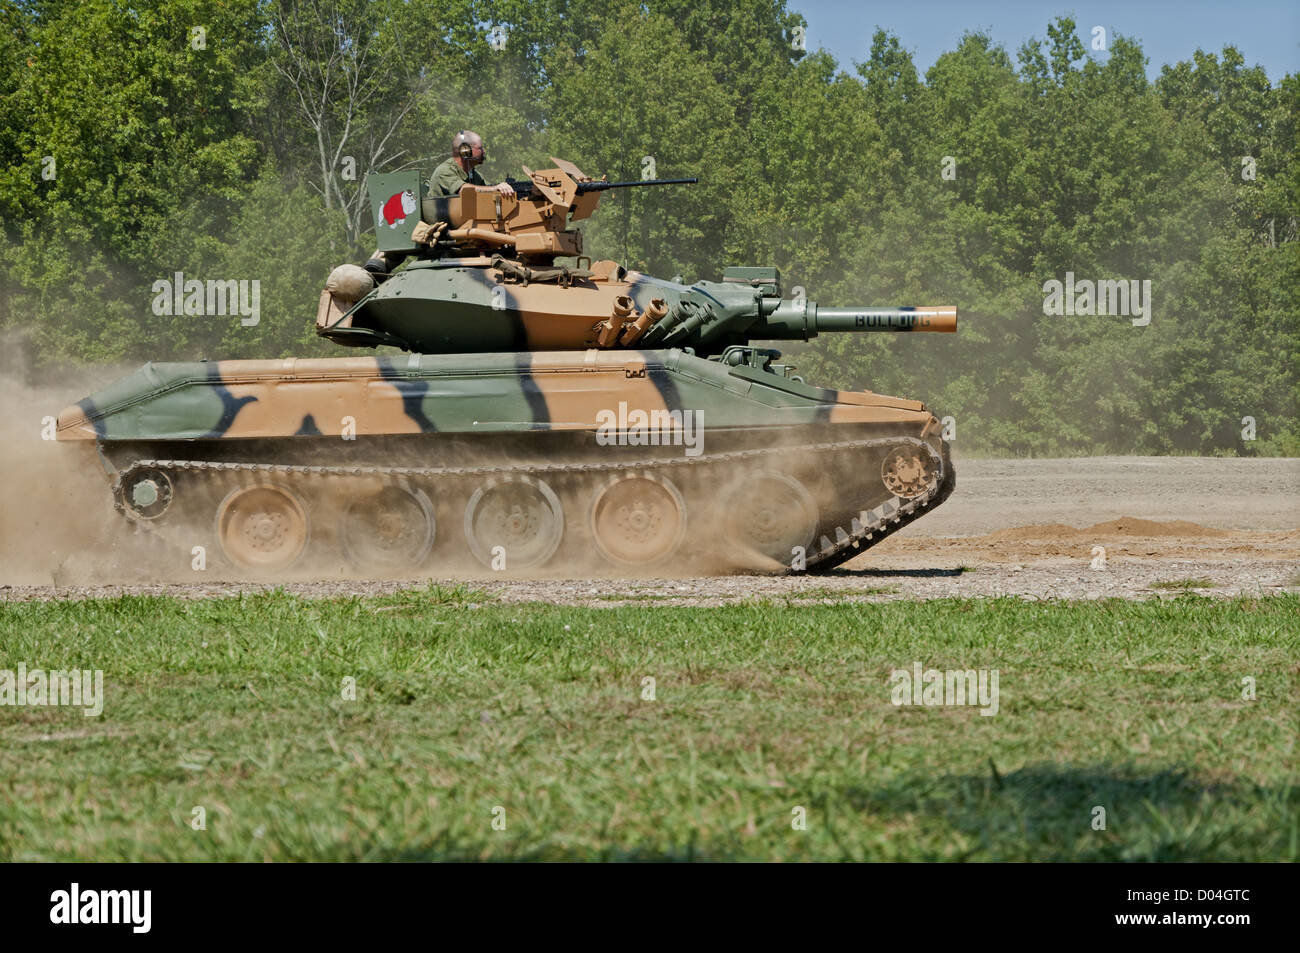 A camouflaged US Army M551 Sheridan light tank moving at speed over open ground. Sheridans first saw combat in Vietnam - Stock Image